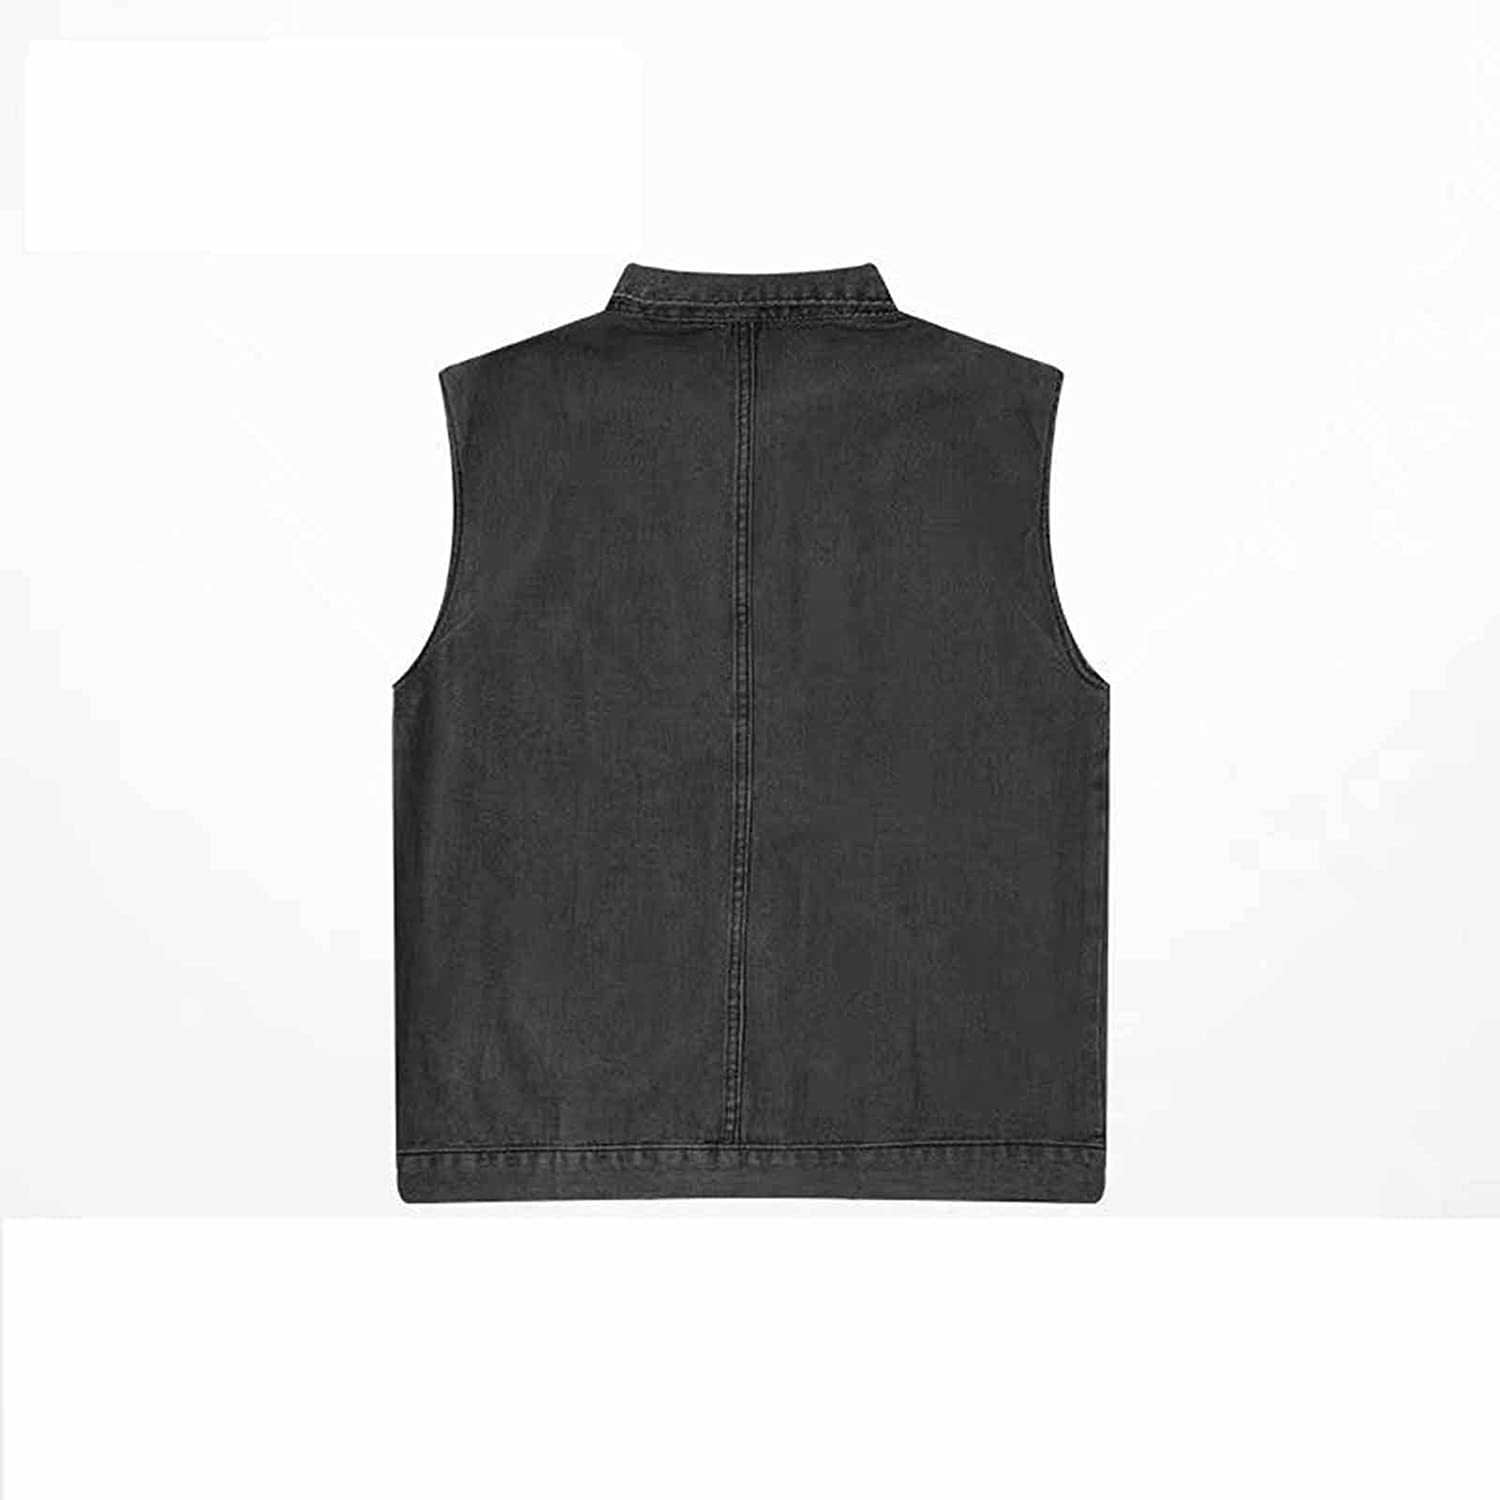 YXYECEIPENO 2021 Autumn Button Sleeveless Cowboy Jacket Men's Jacket Vest for Outdoor Sports, Party Activities Best Gift Choice (S-3XL, 2 Colors) (Color : Black, Size : Large)